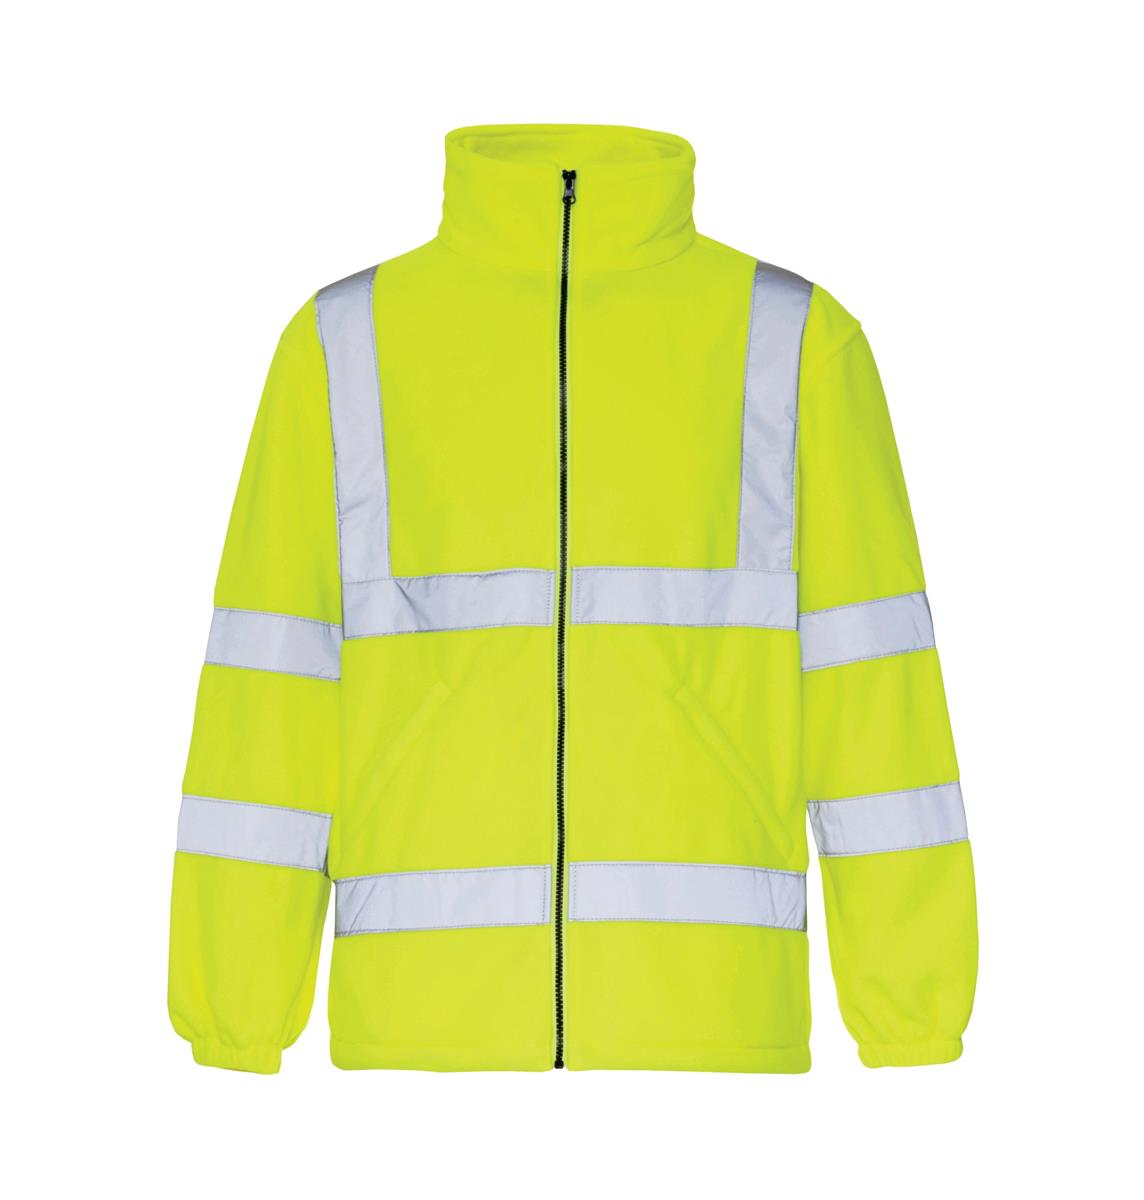 ST High Vis Micro Fleece Jacket Poly Zip Fastening Extra Large Yellow Ref 38043 *Approx 3 Day Leadtime*